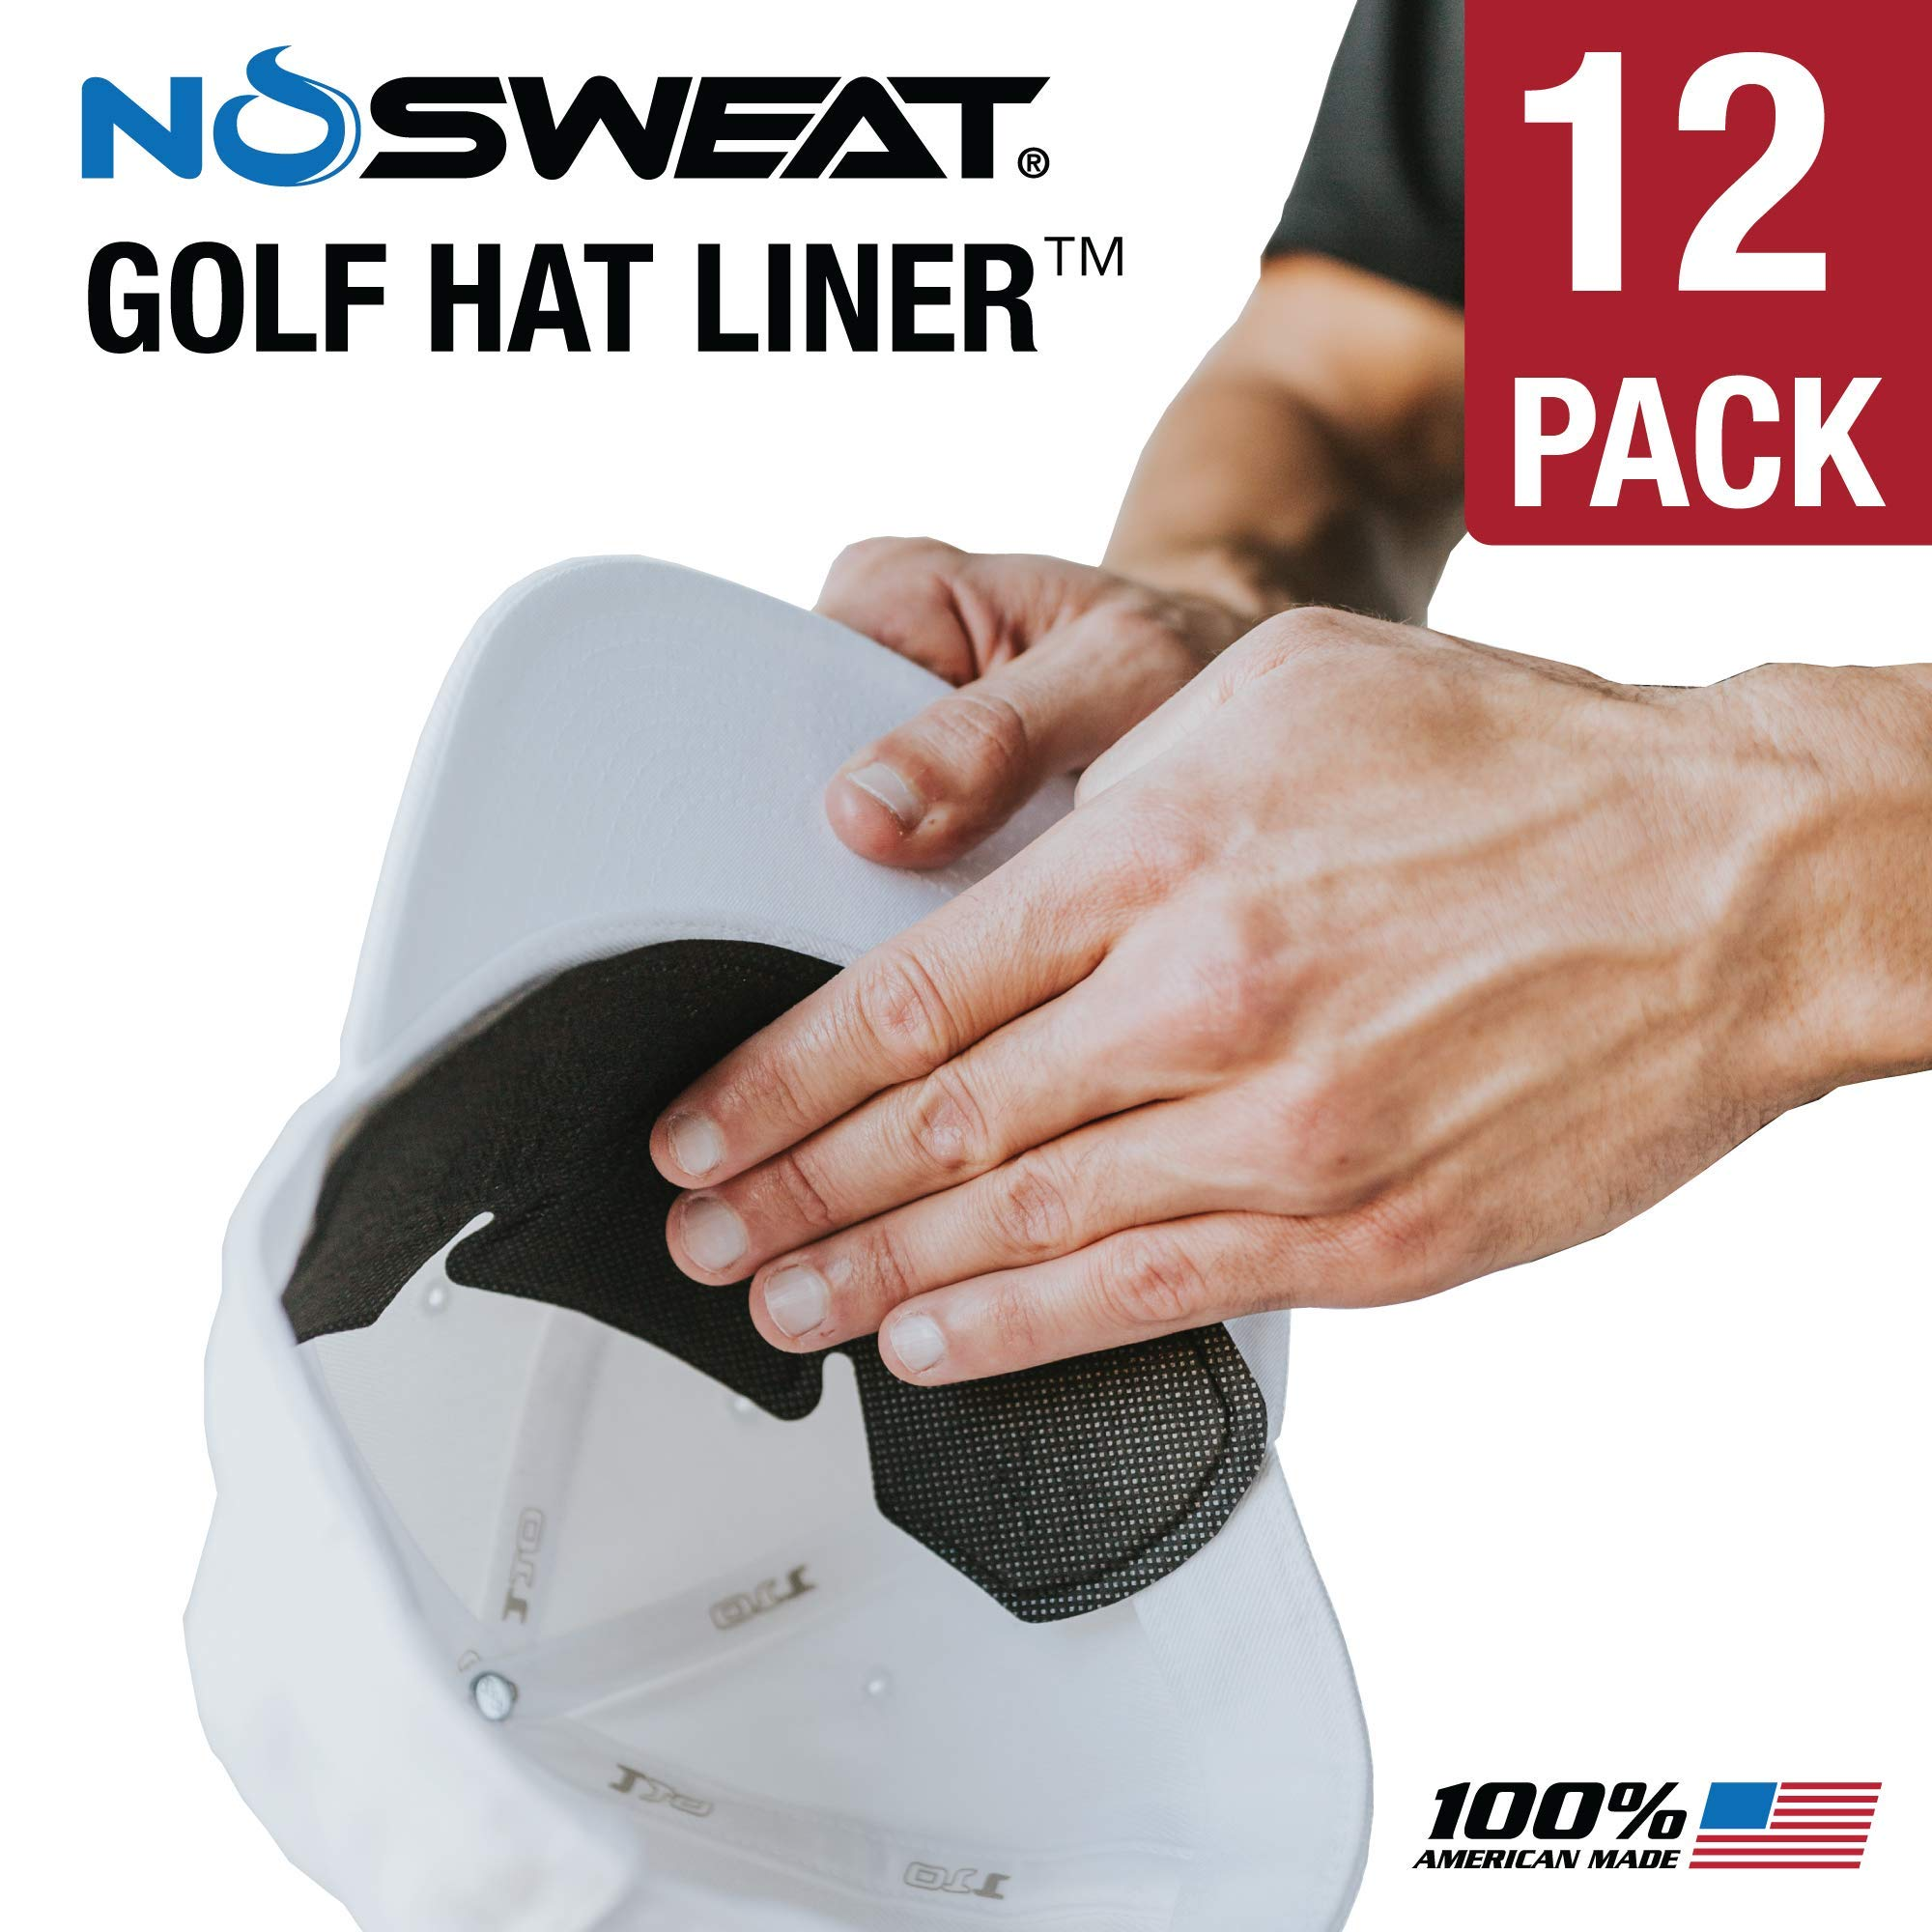 No Sweat Golf Hat Liner & Cap Protection - Moisture Wicking Sweatband Absorbs Dripping Sweat | Helps Prevent Acne, Prevents Hat Stain Rings (12-Pack) by No Sweat